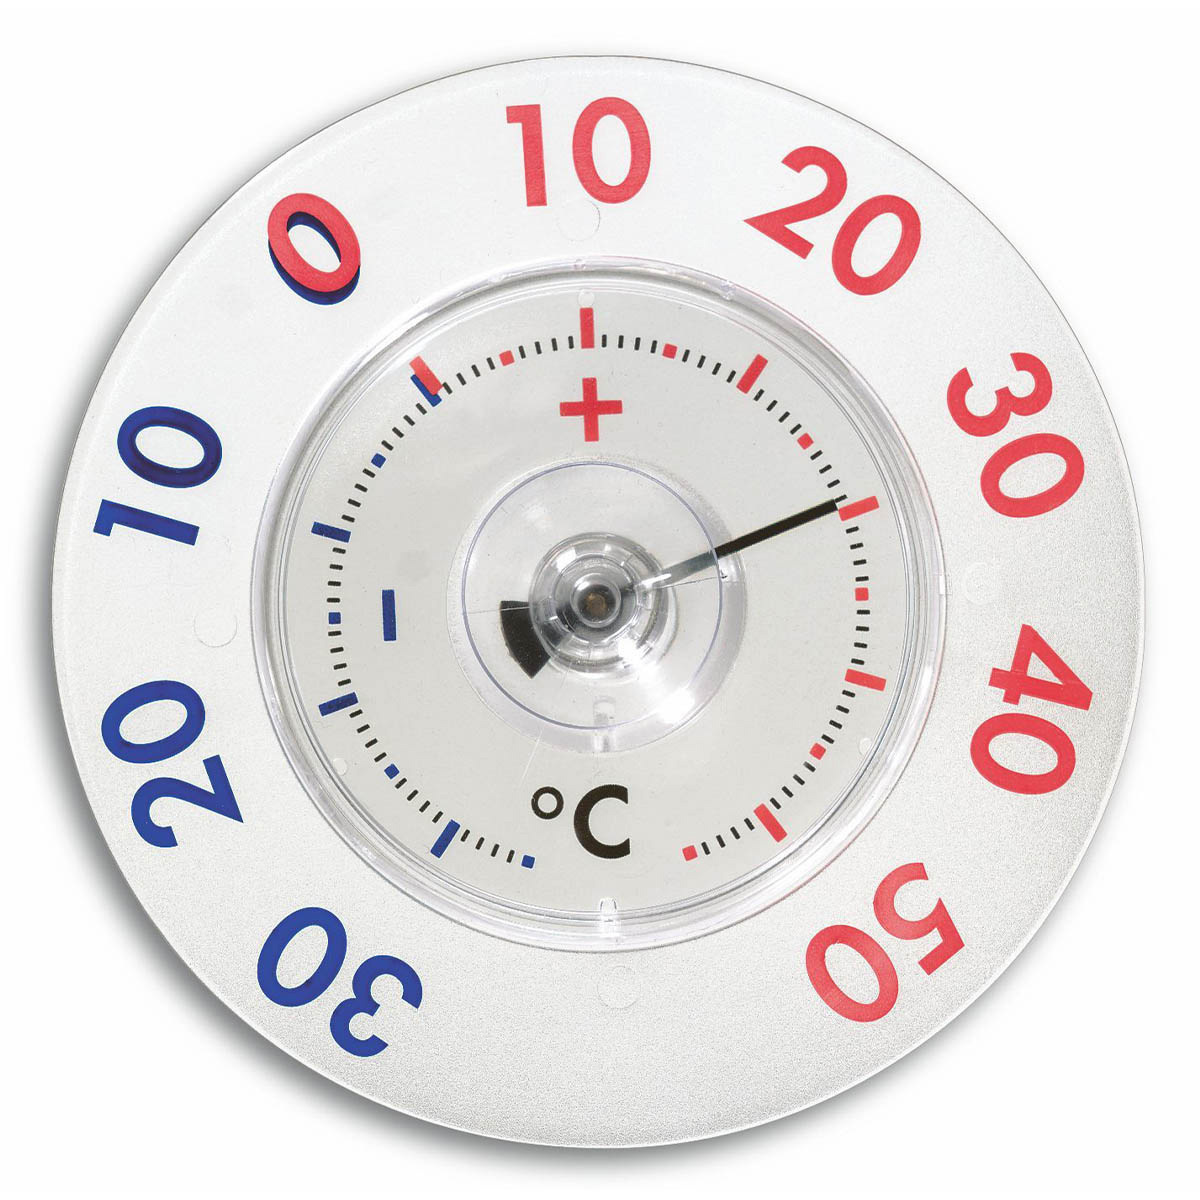 14-6014-analoges-fensterthermometer-twatcher-xl-variation-1200x1200px.jpg